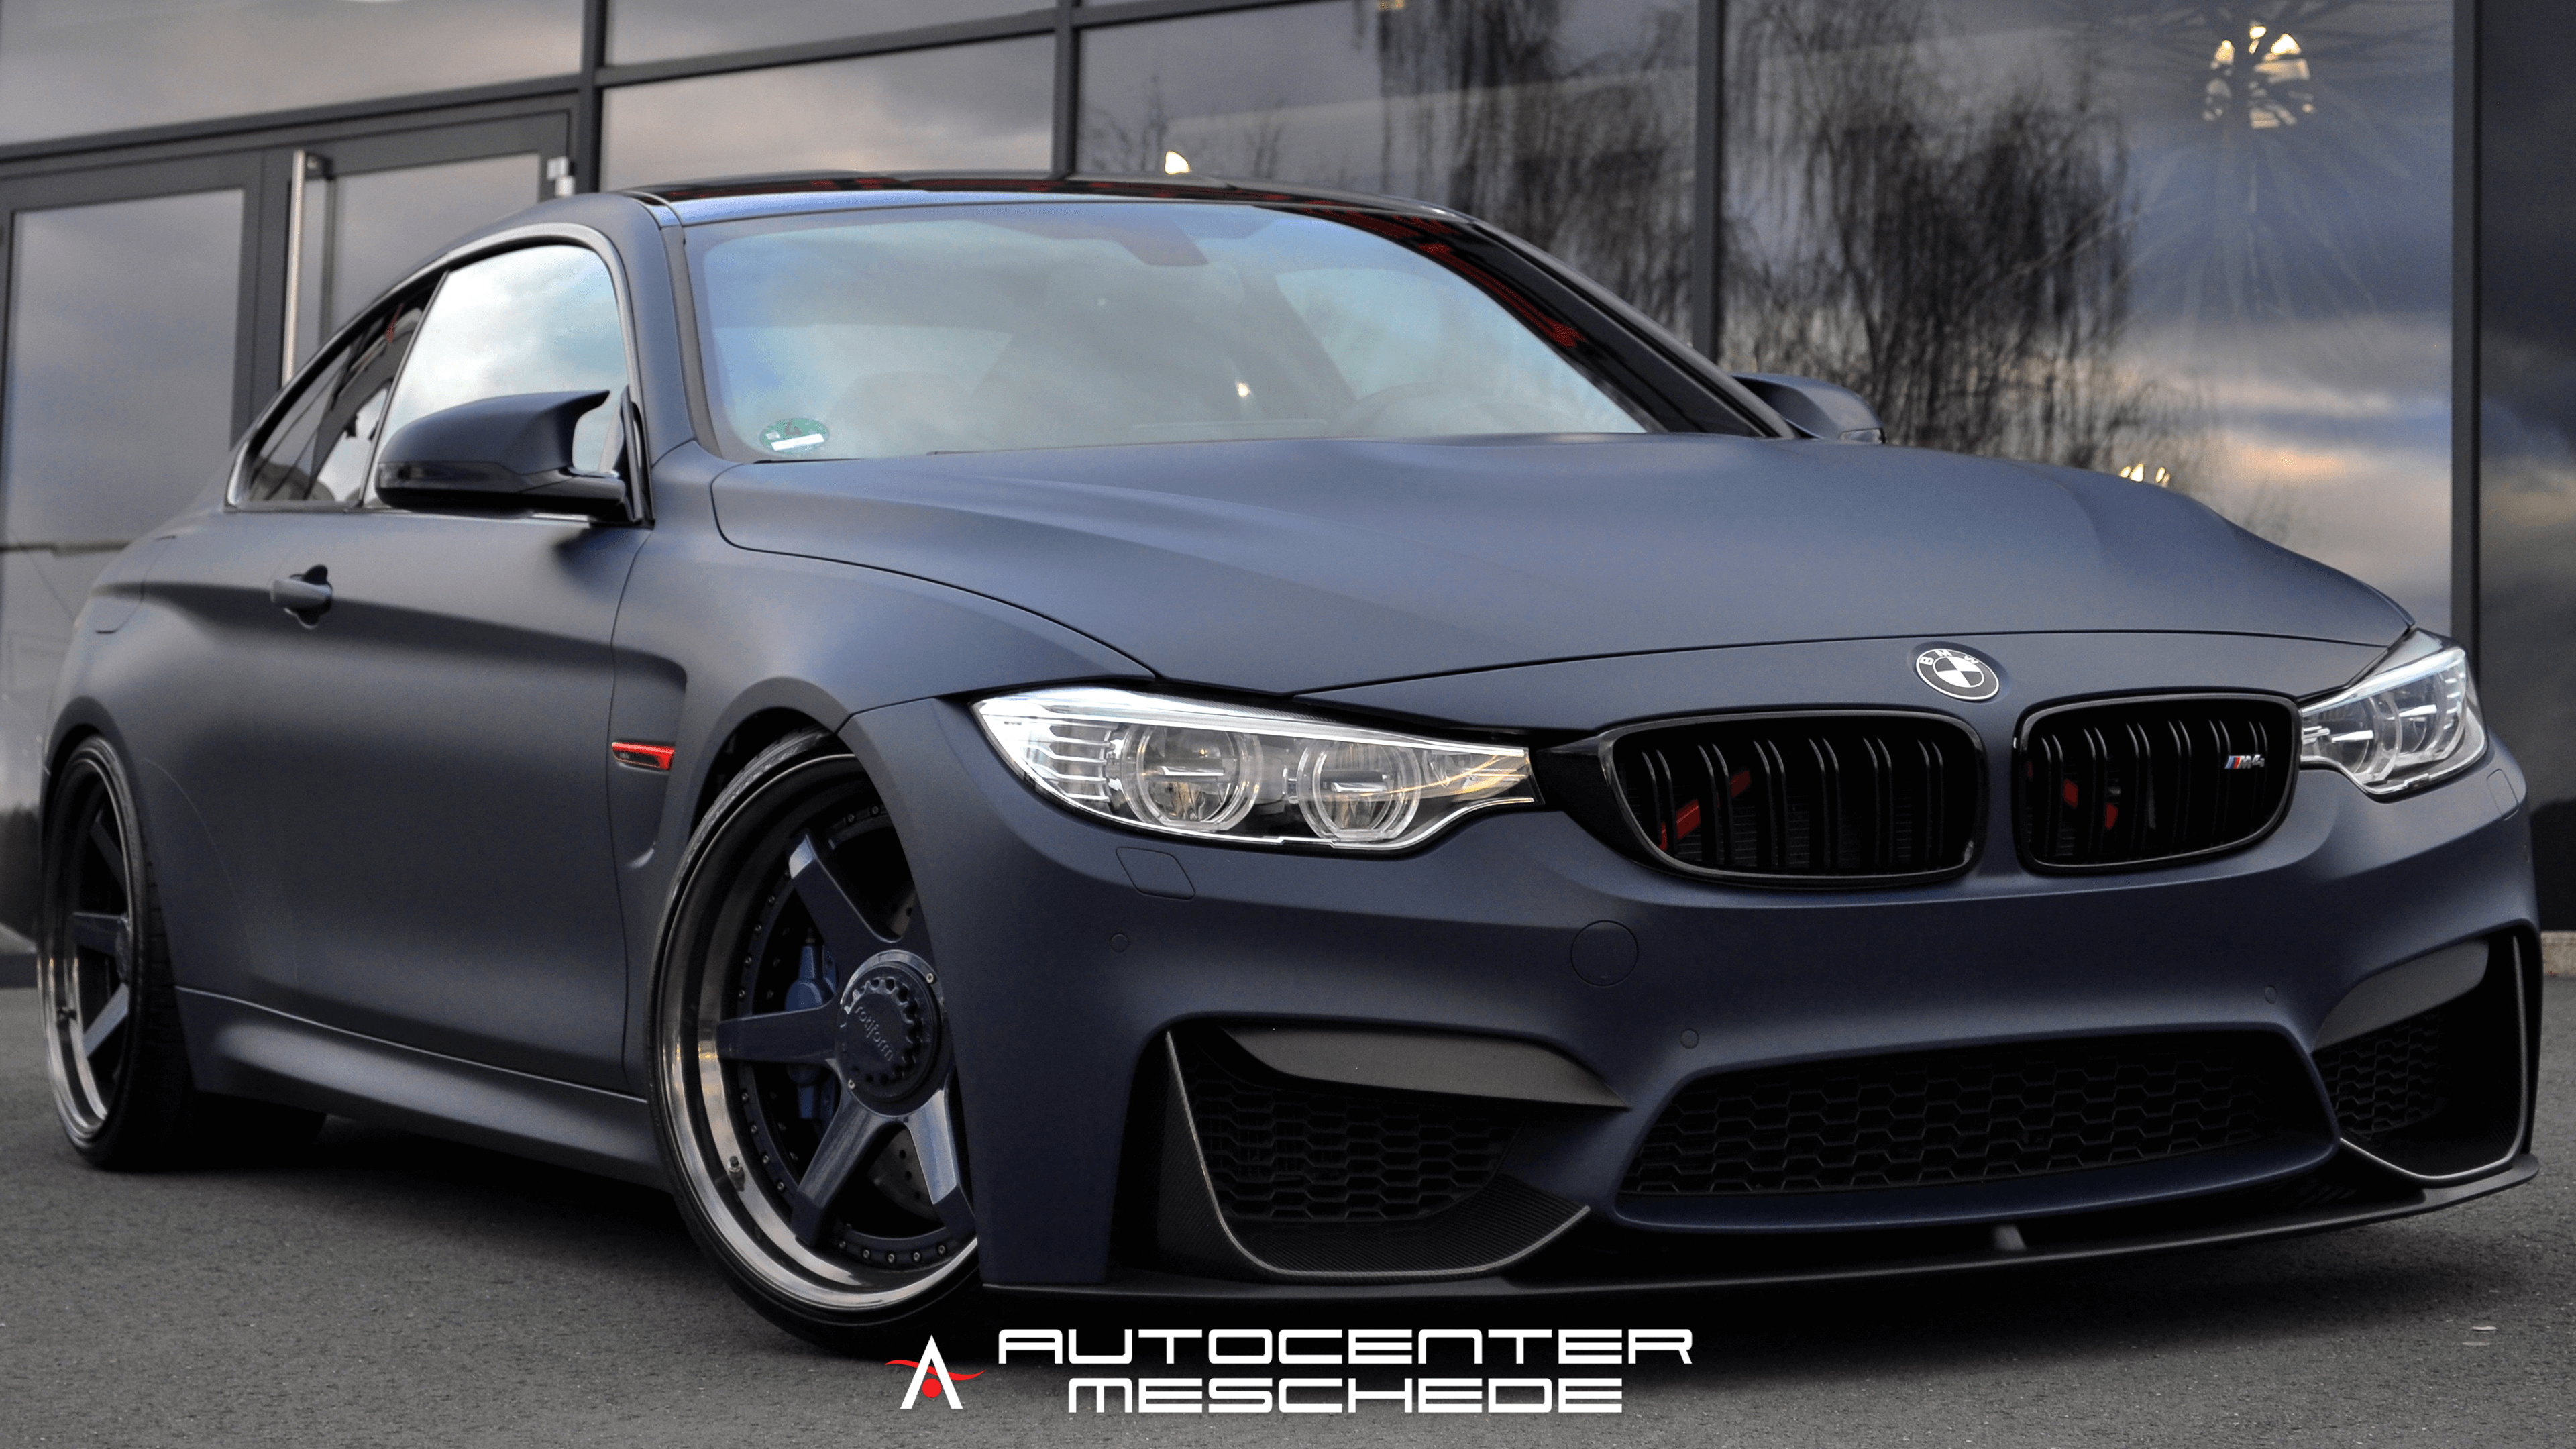 Wallpaper M4 | Autocenter Meschede